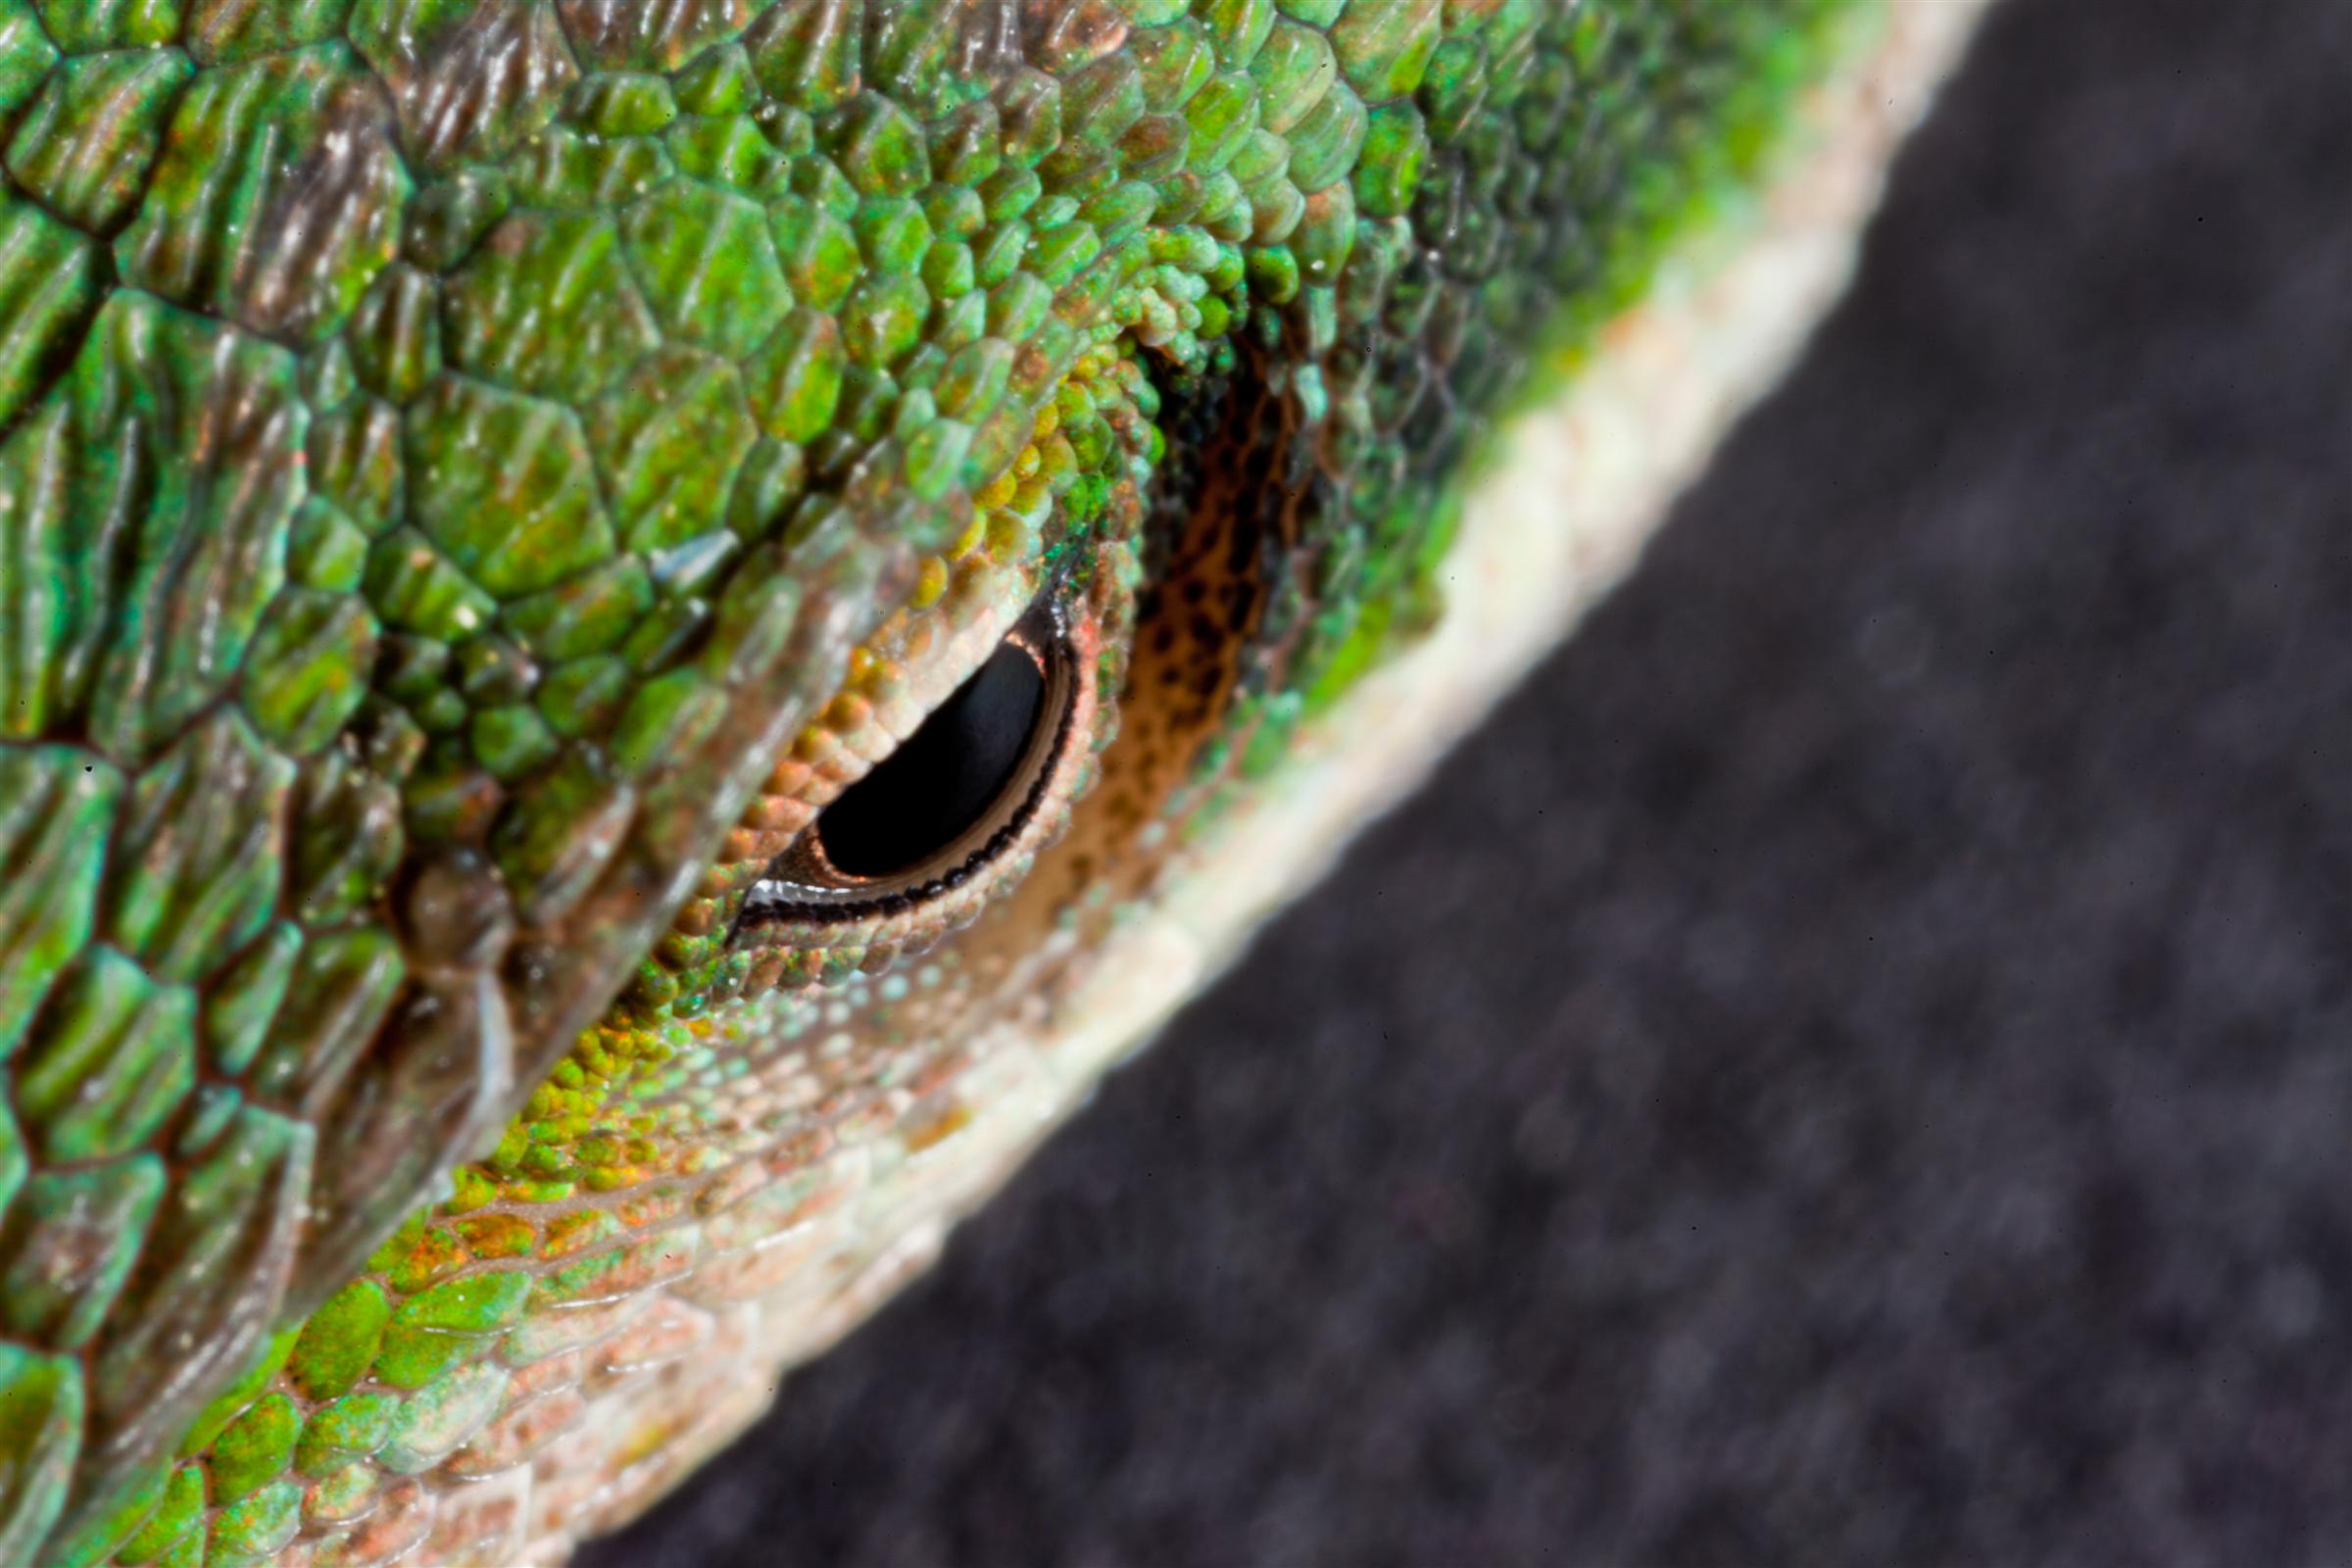 Lizard Eye, Eye, Lizard, Reptile, HQ Photo